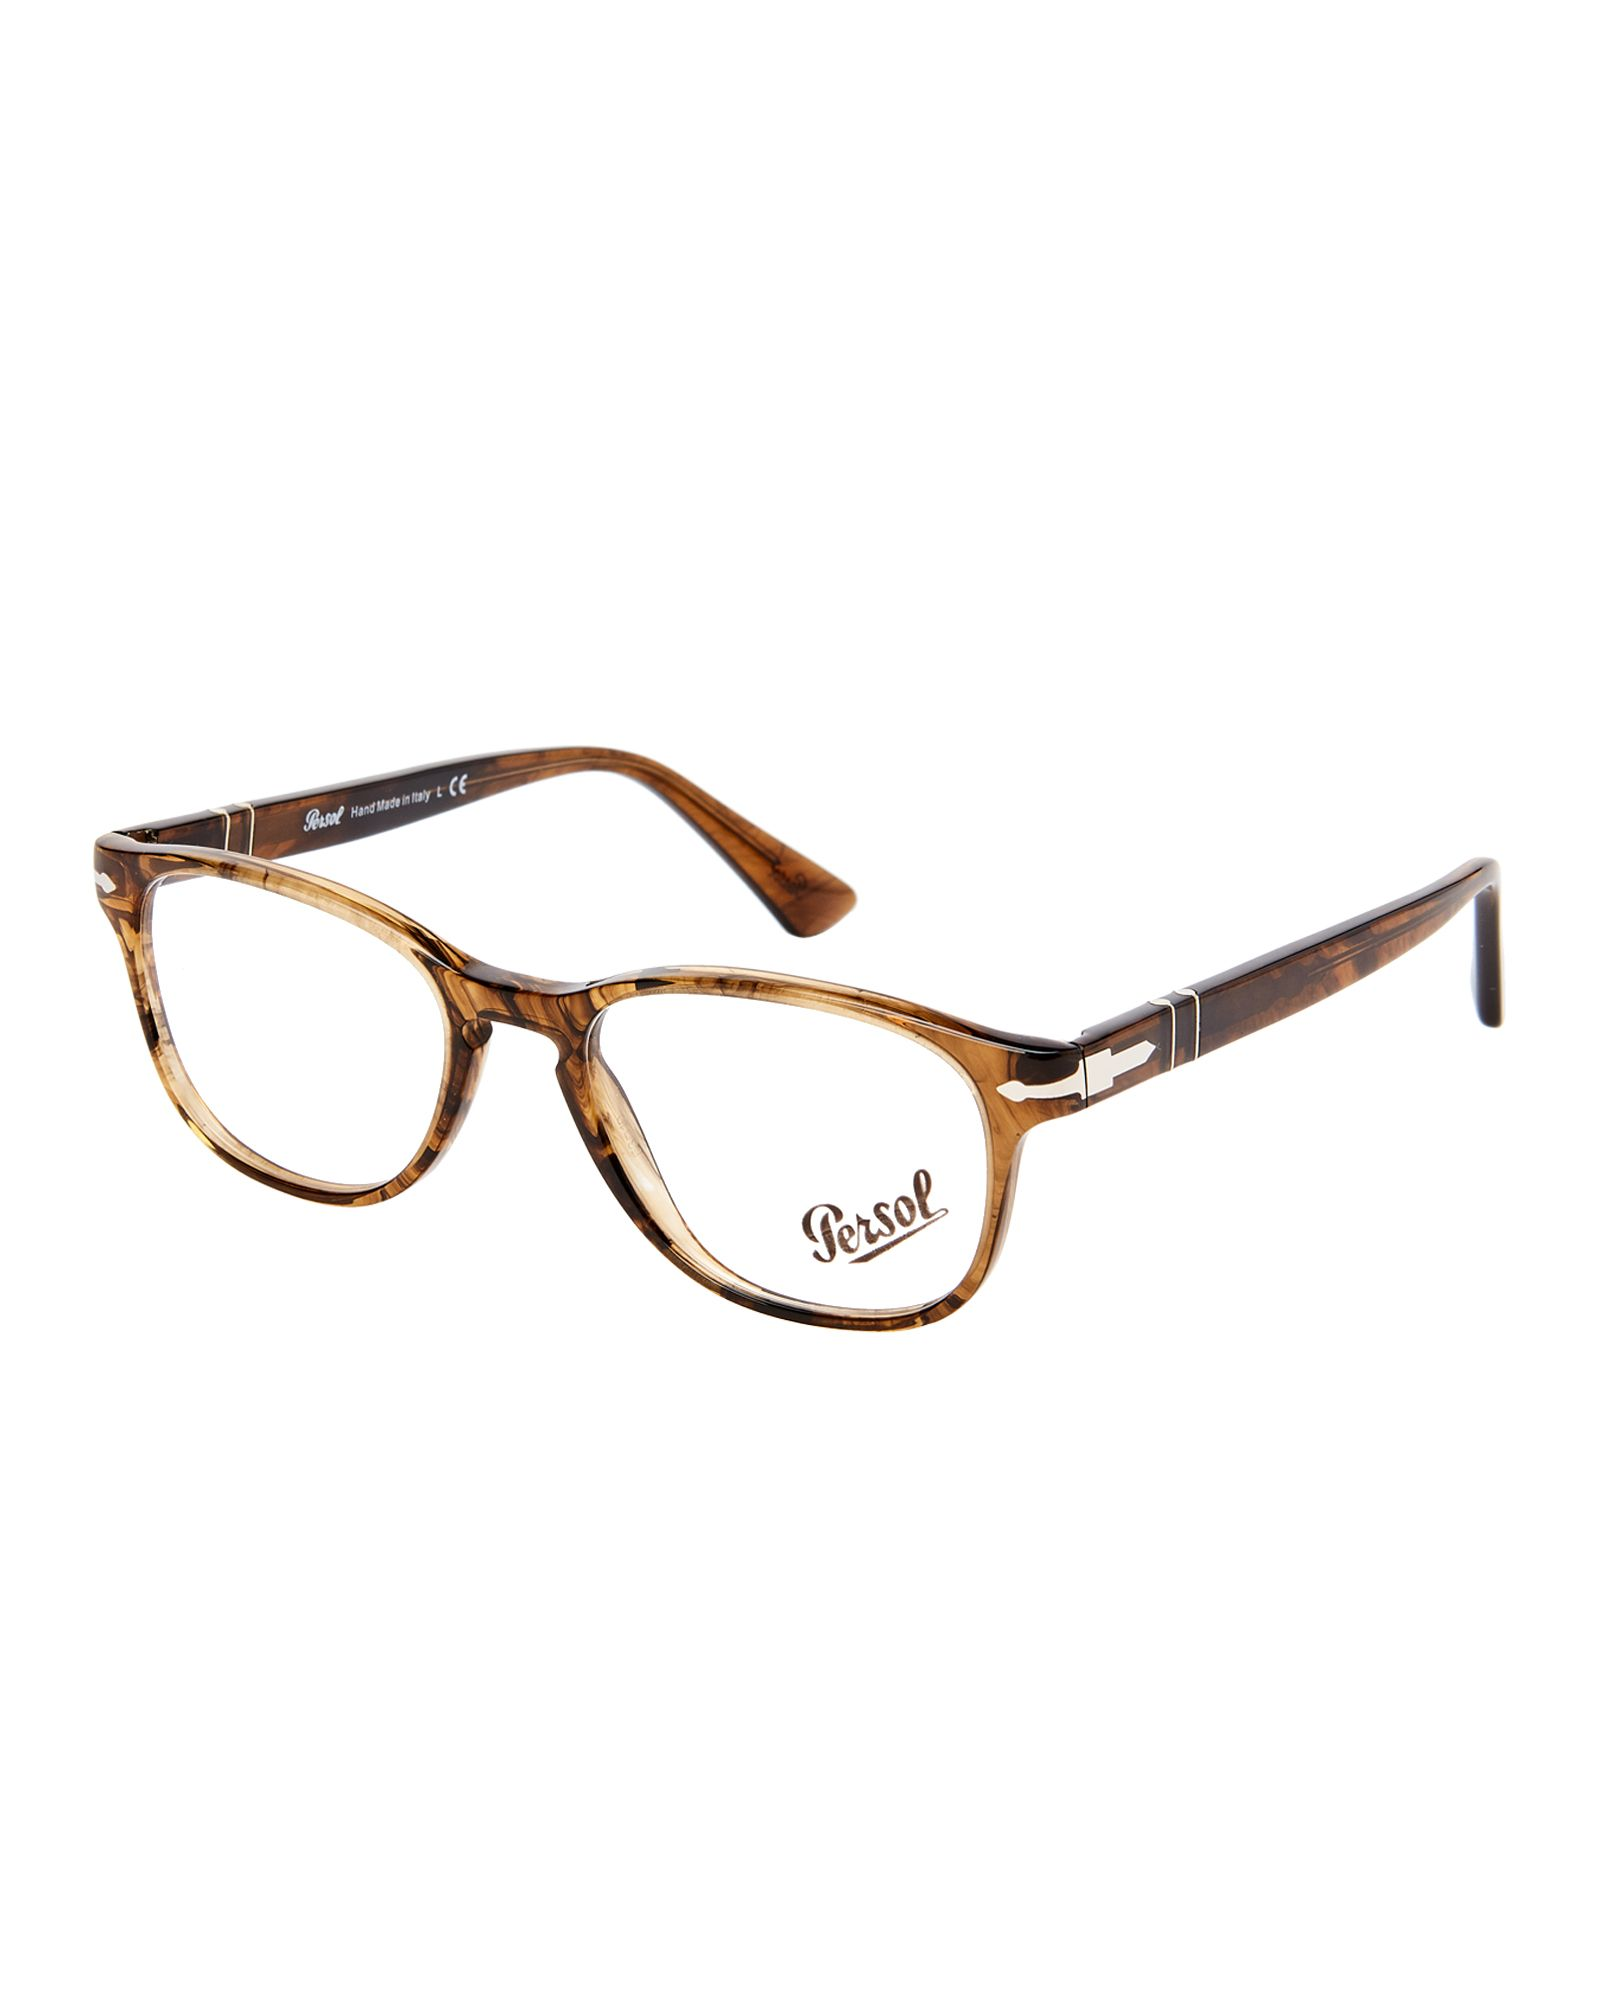 Persol PO3085 Light Brown Oval Optical Frames | *Apparel ...